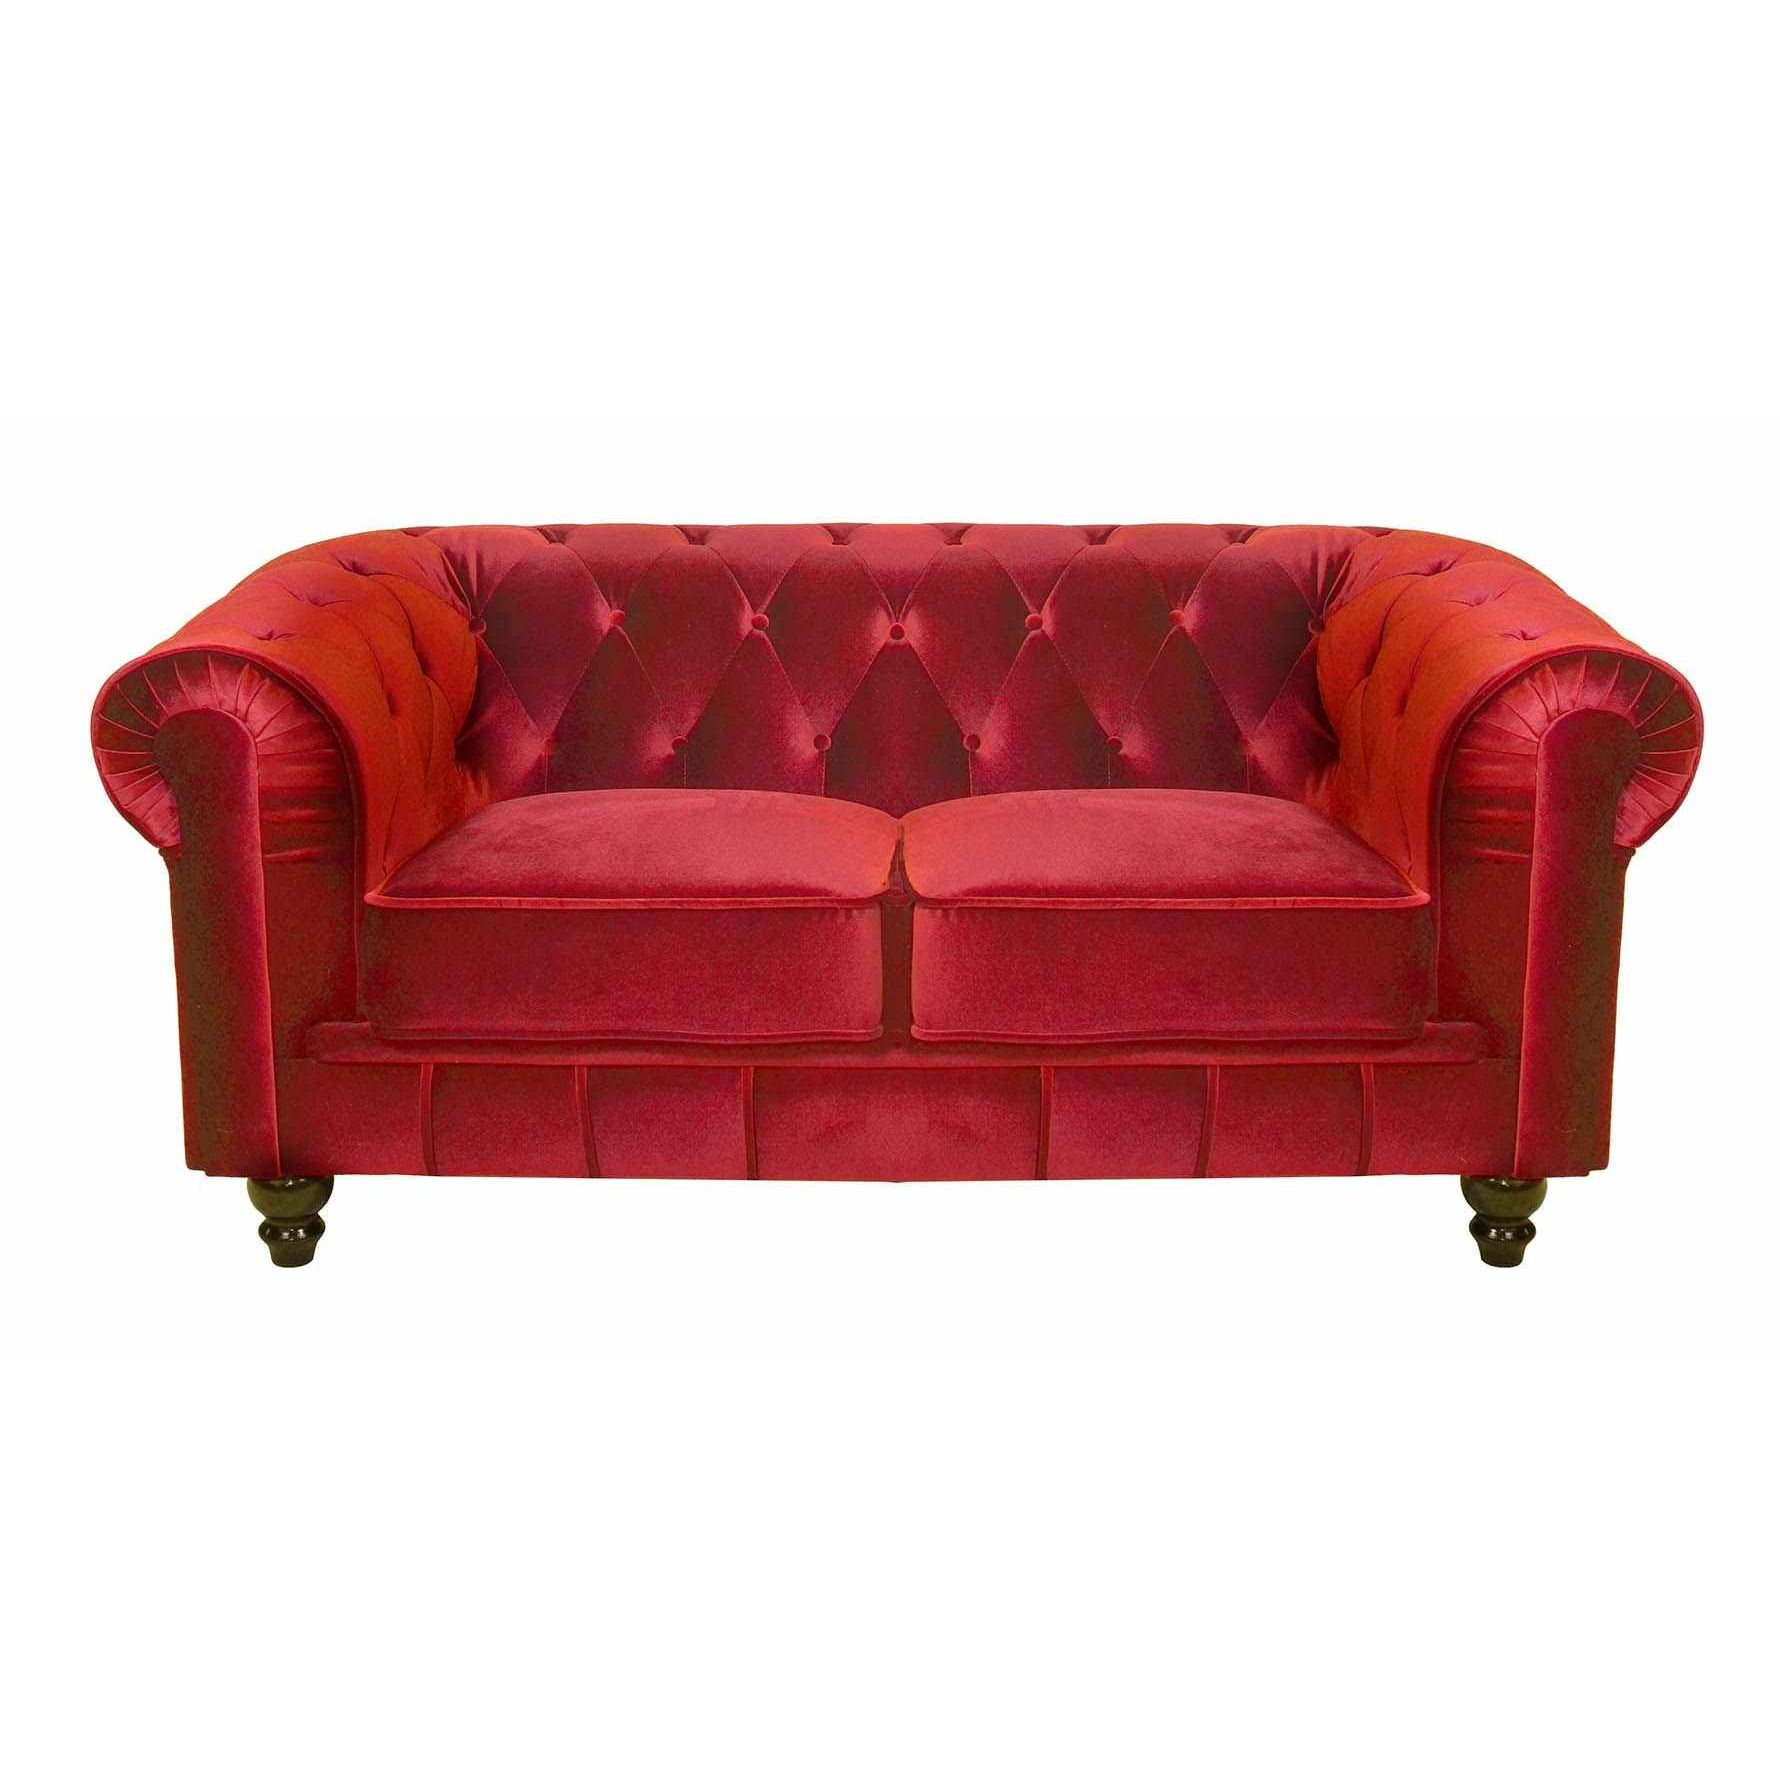 Deco in paris - Canape chesterfield velour ...